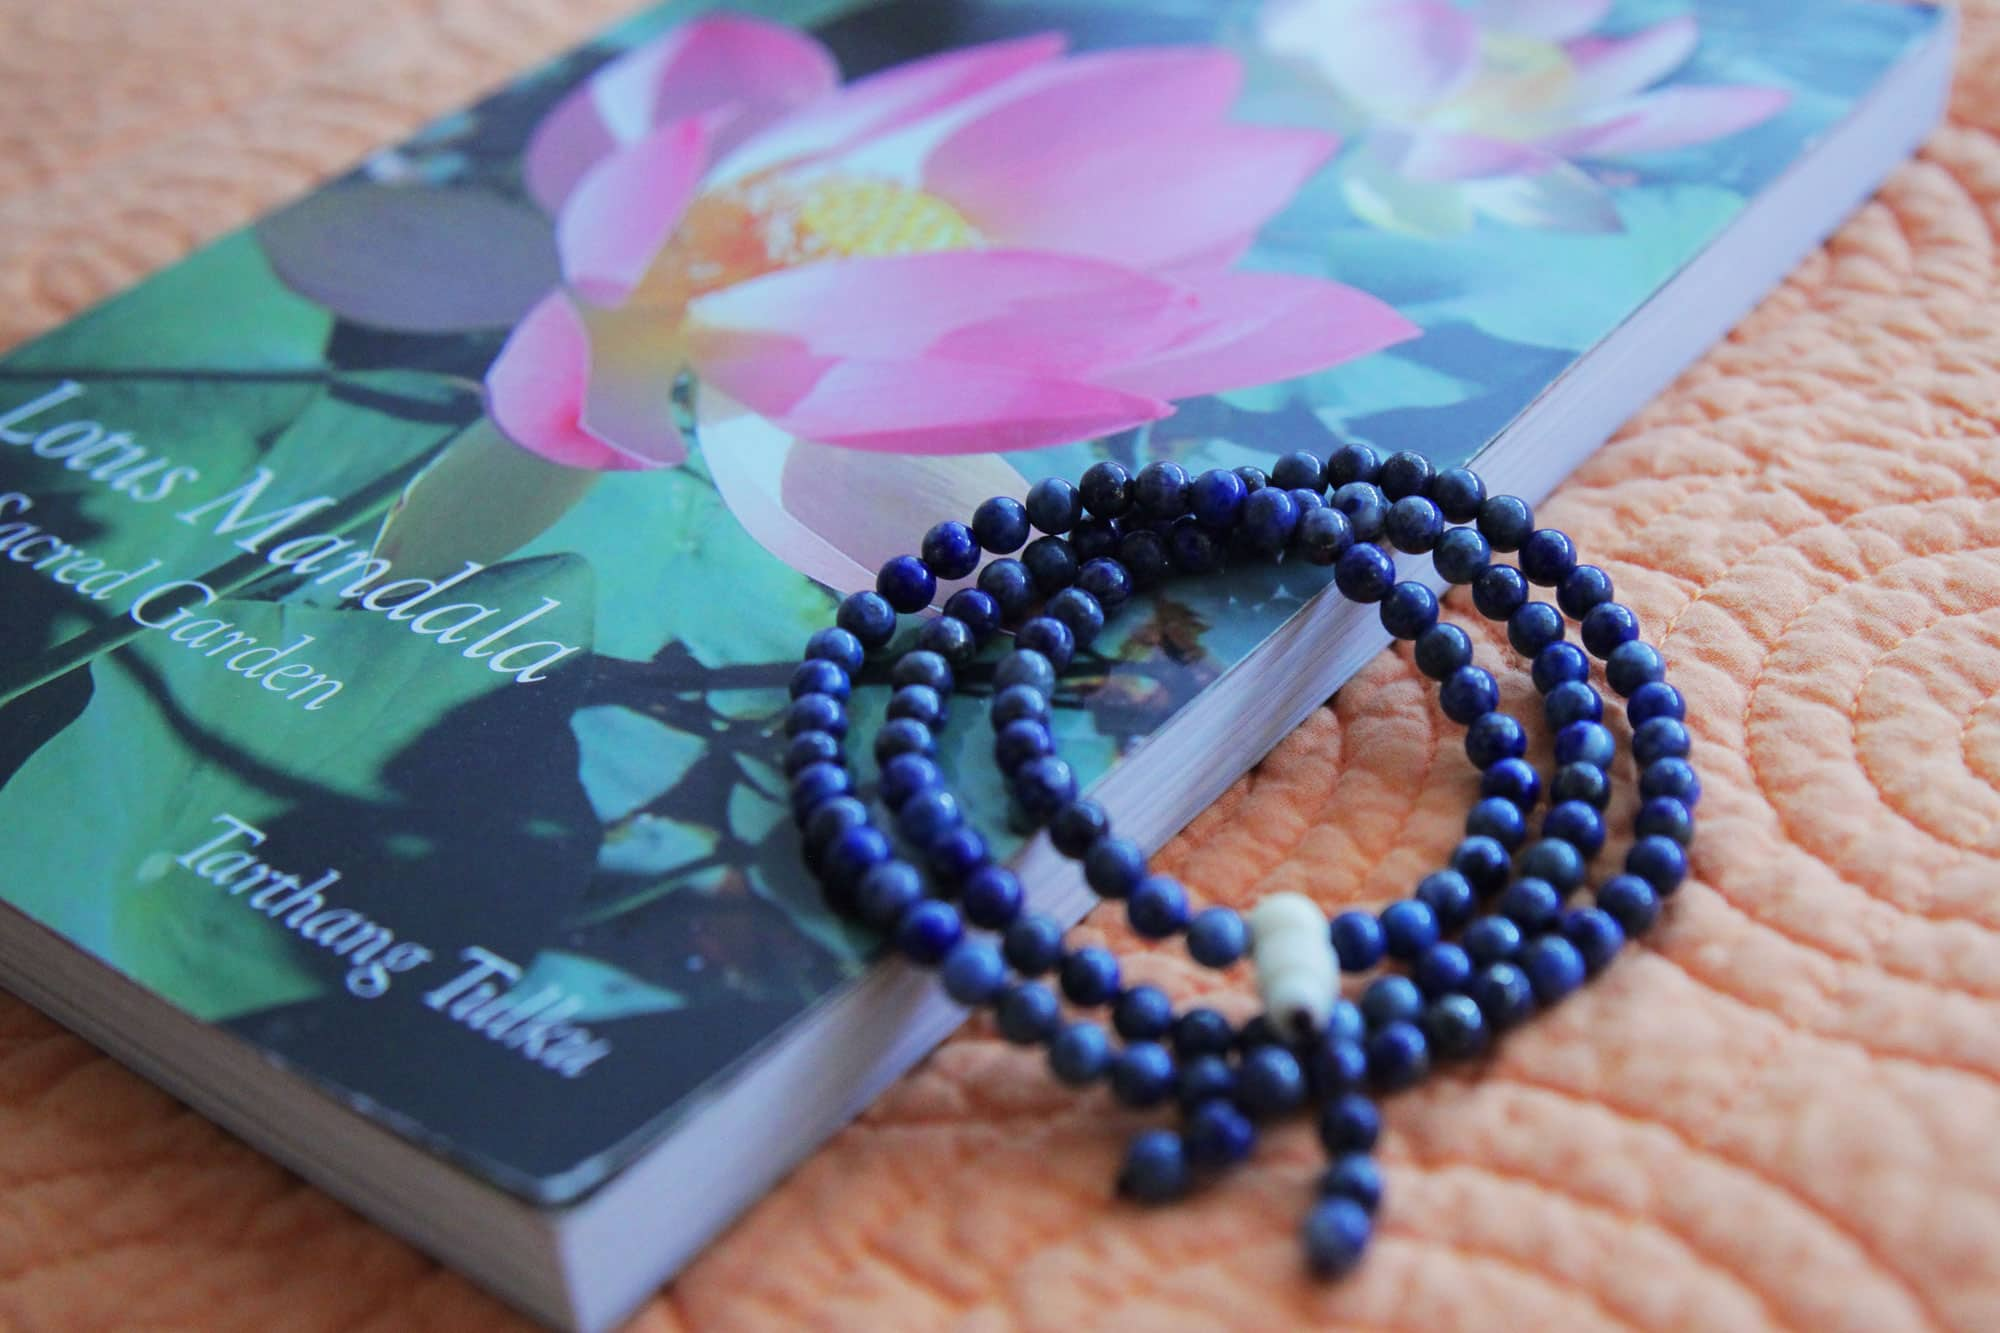 Image of prayer beads and a book, Lotus Mandala